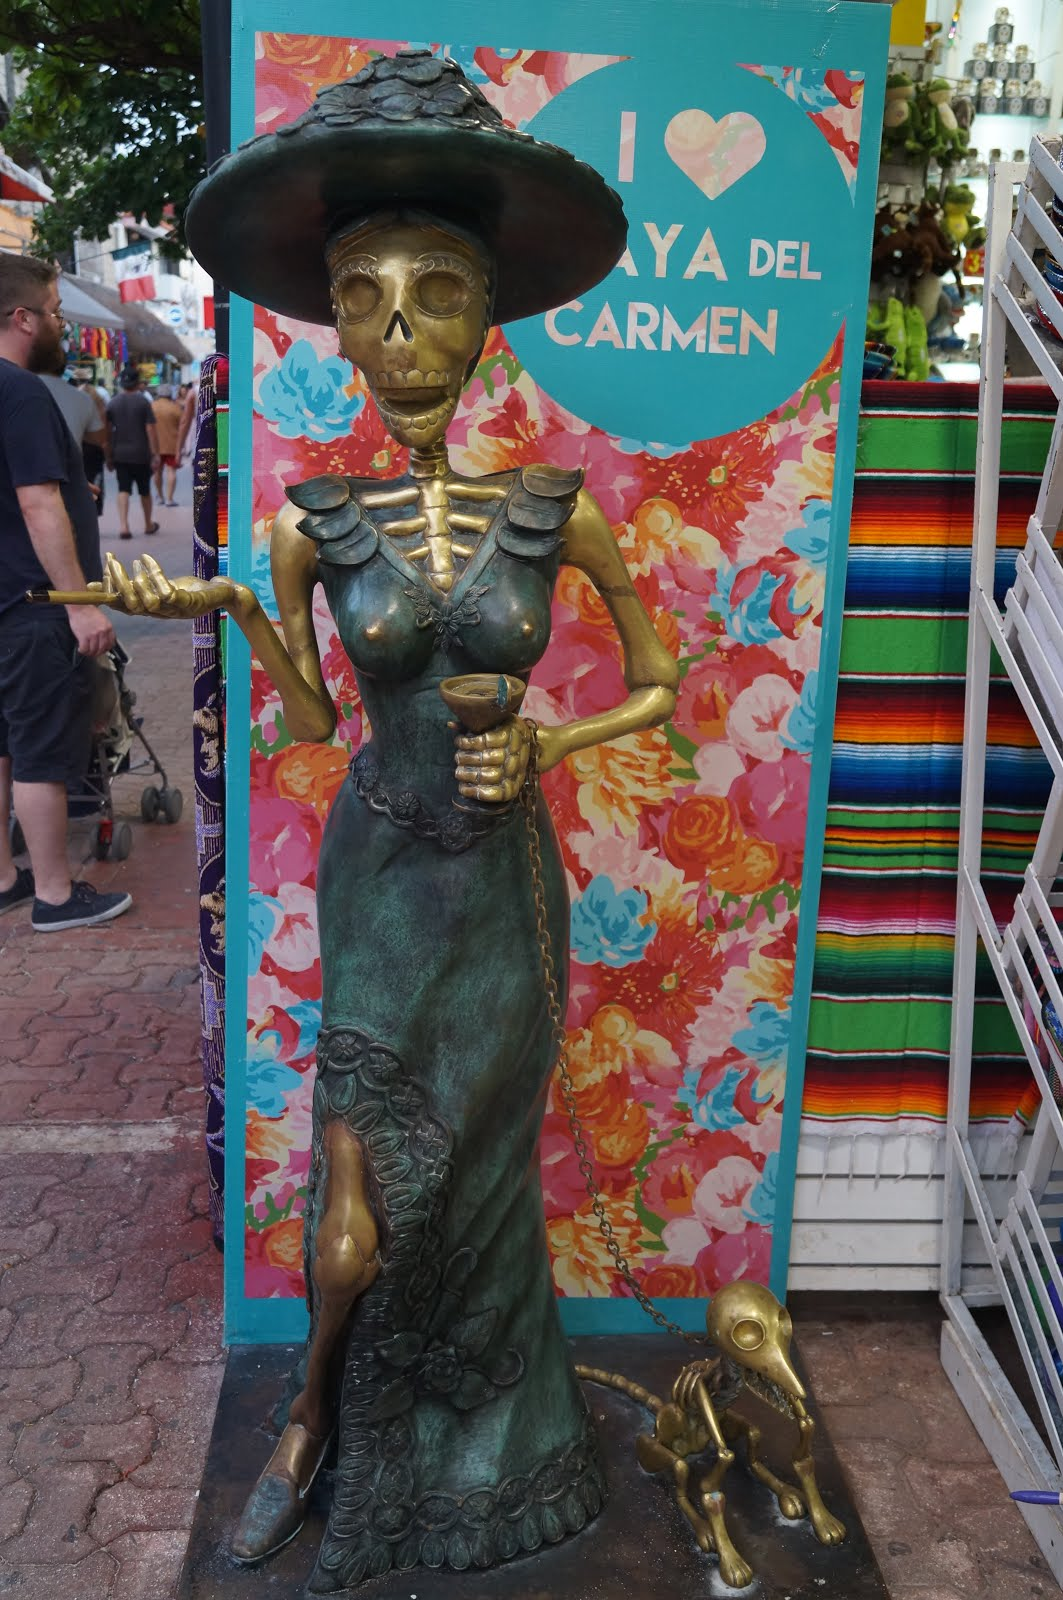 One of the famous singers visiting Playa del Carmen